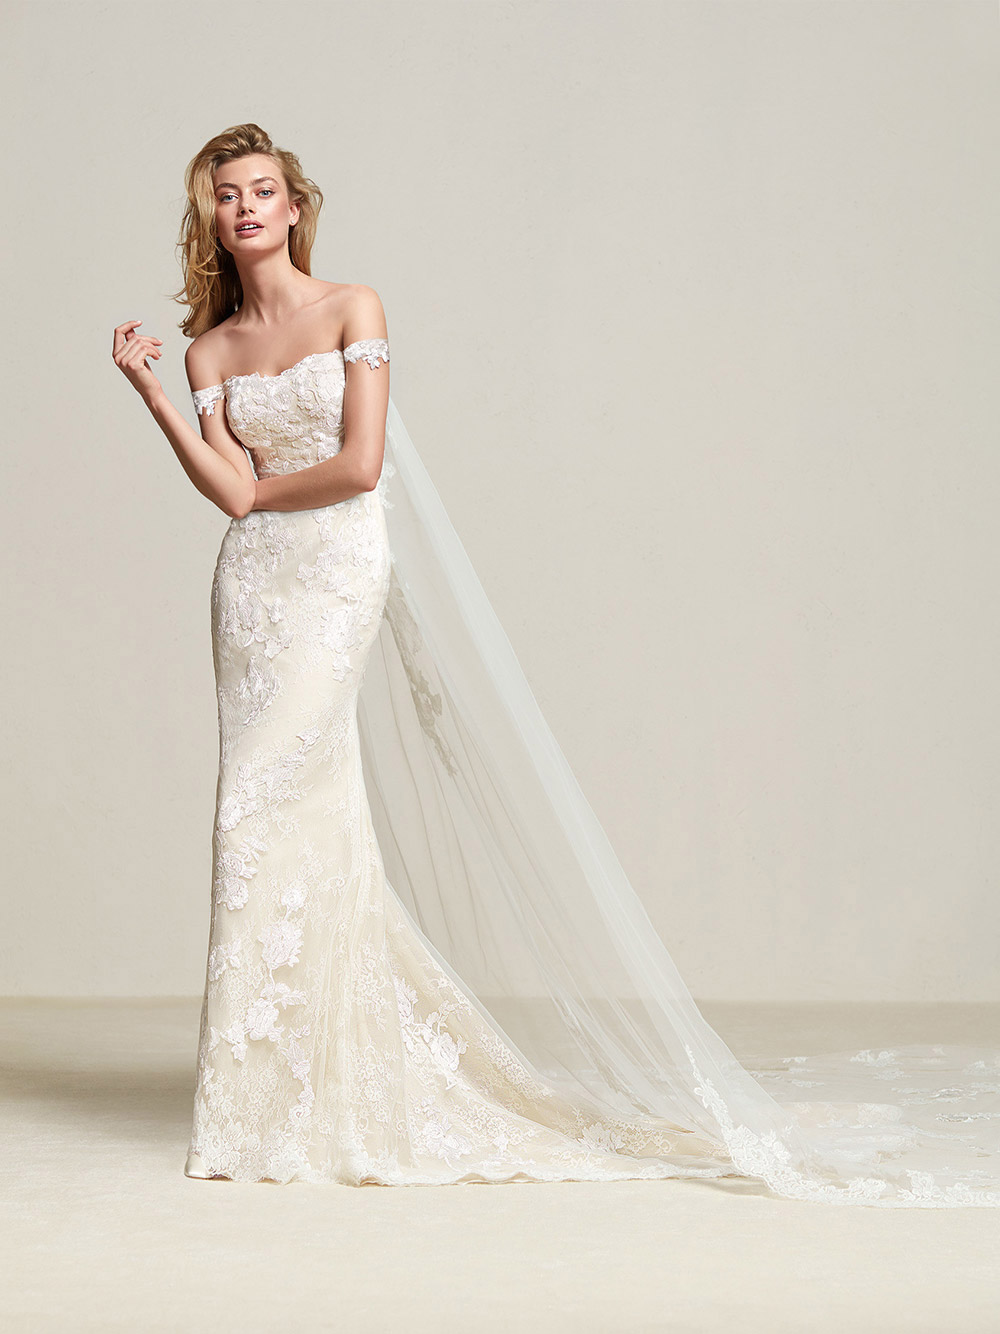 Dria - Pronovias 2018 Bridal Collection. www.theweddingnotebook.com